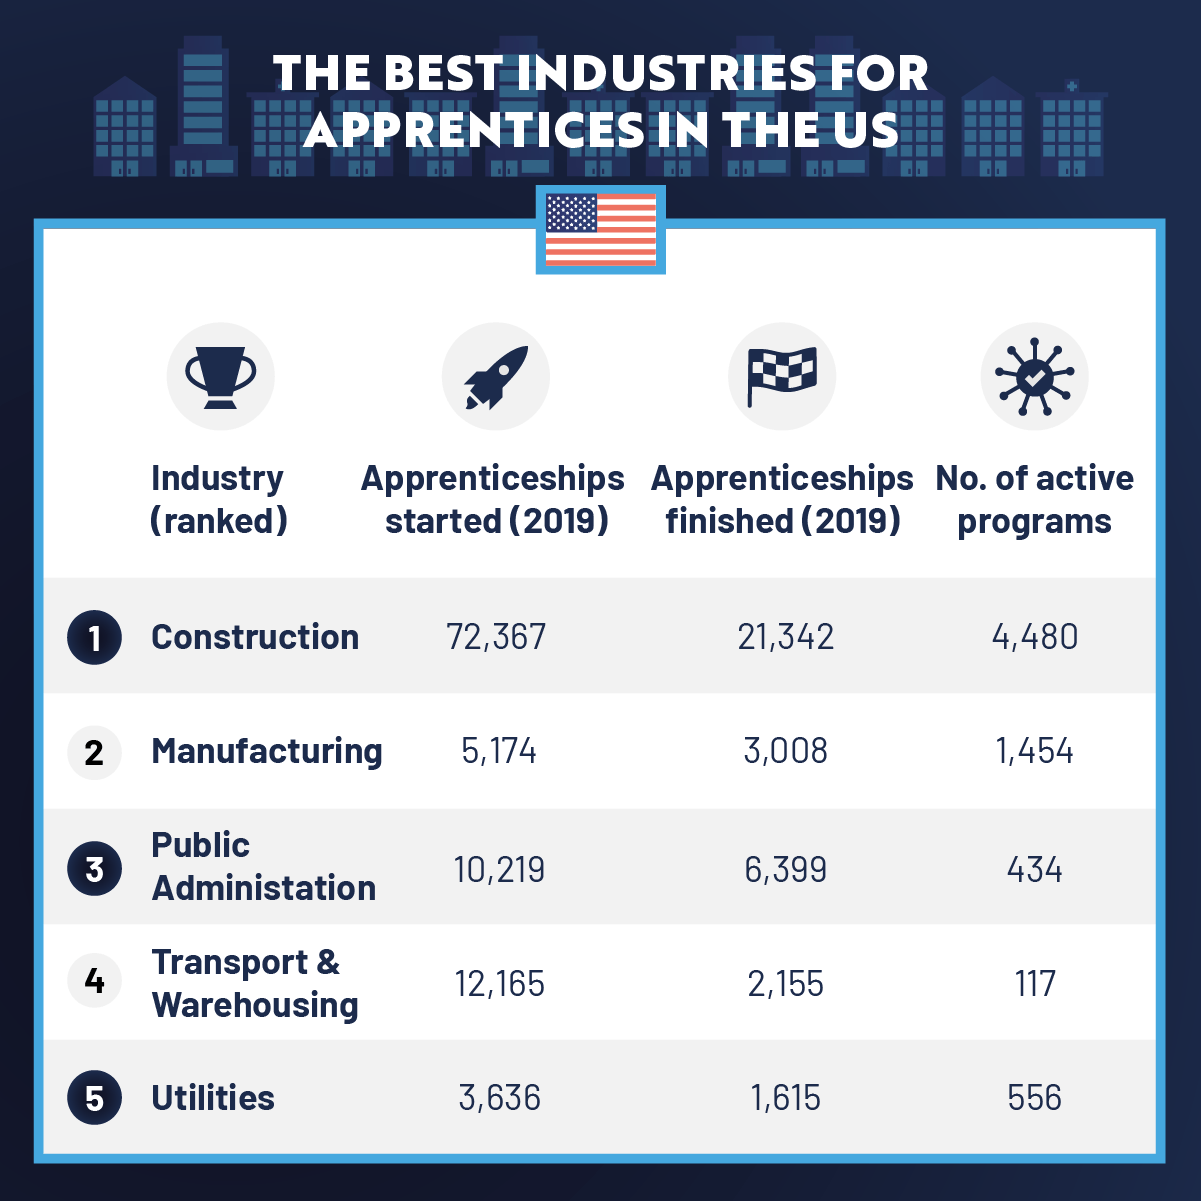 The Best Industries For Apprentices In The US